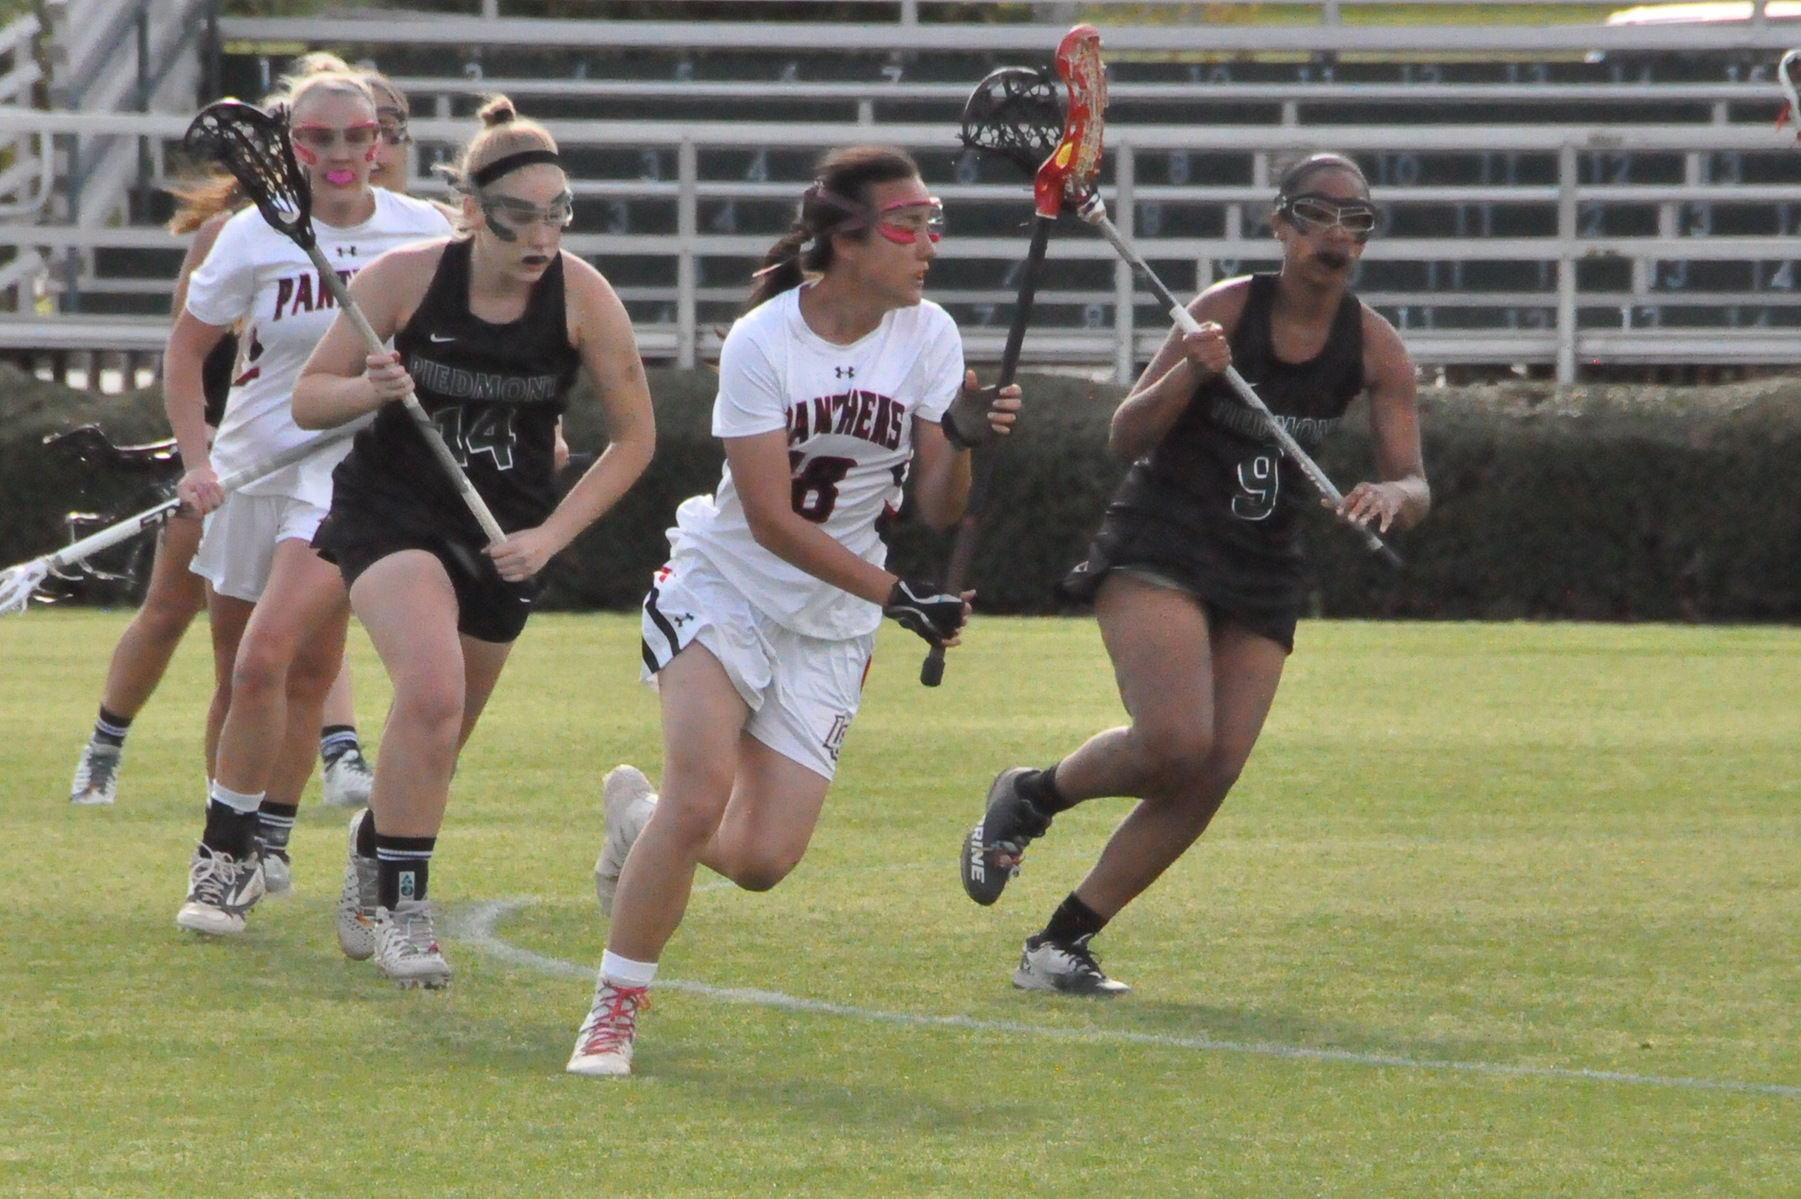 Lacrosse: Piedmont pulls away to beat Panthers in USA South game